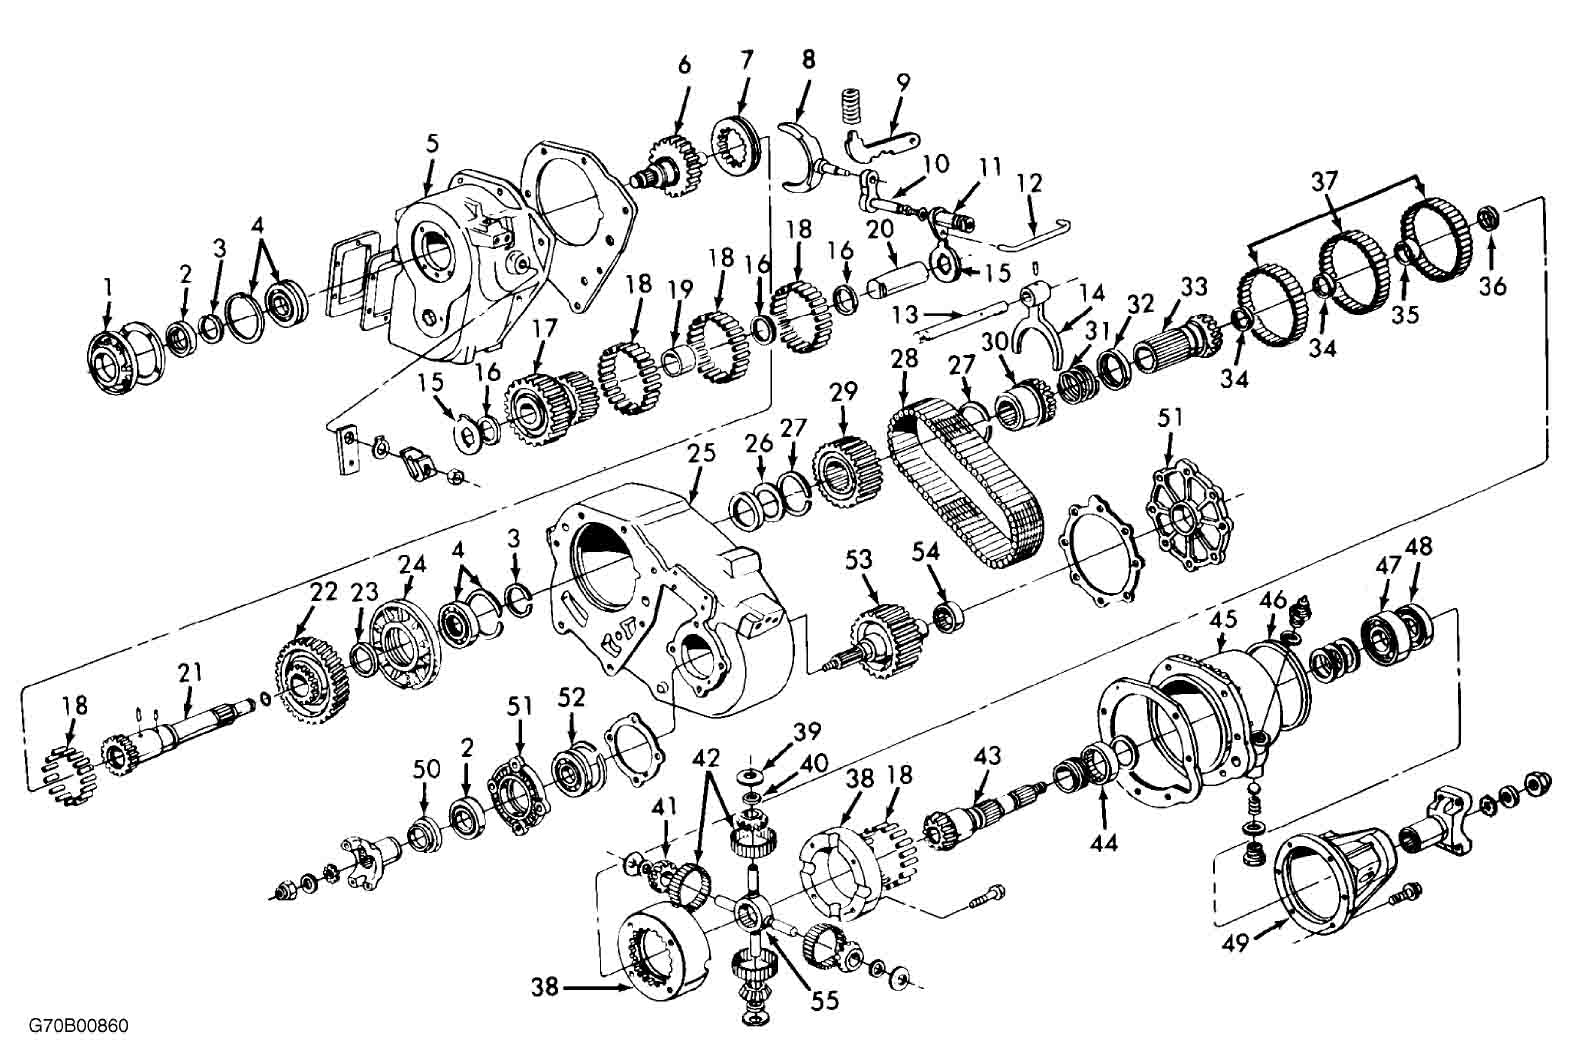 hight resolution of here is an exploded view diagram